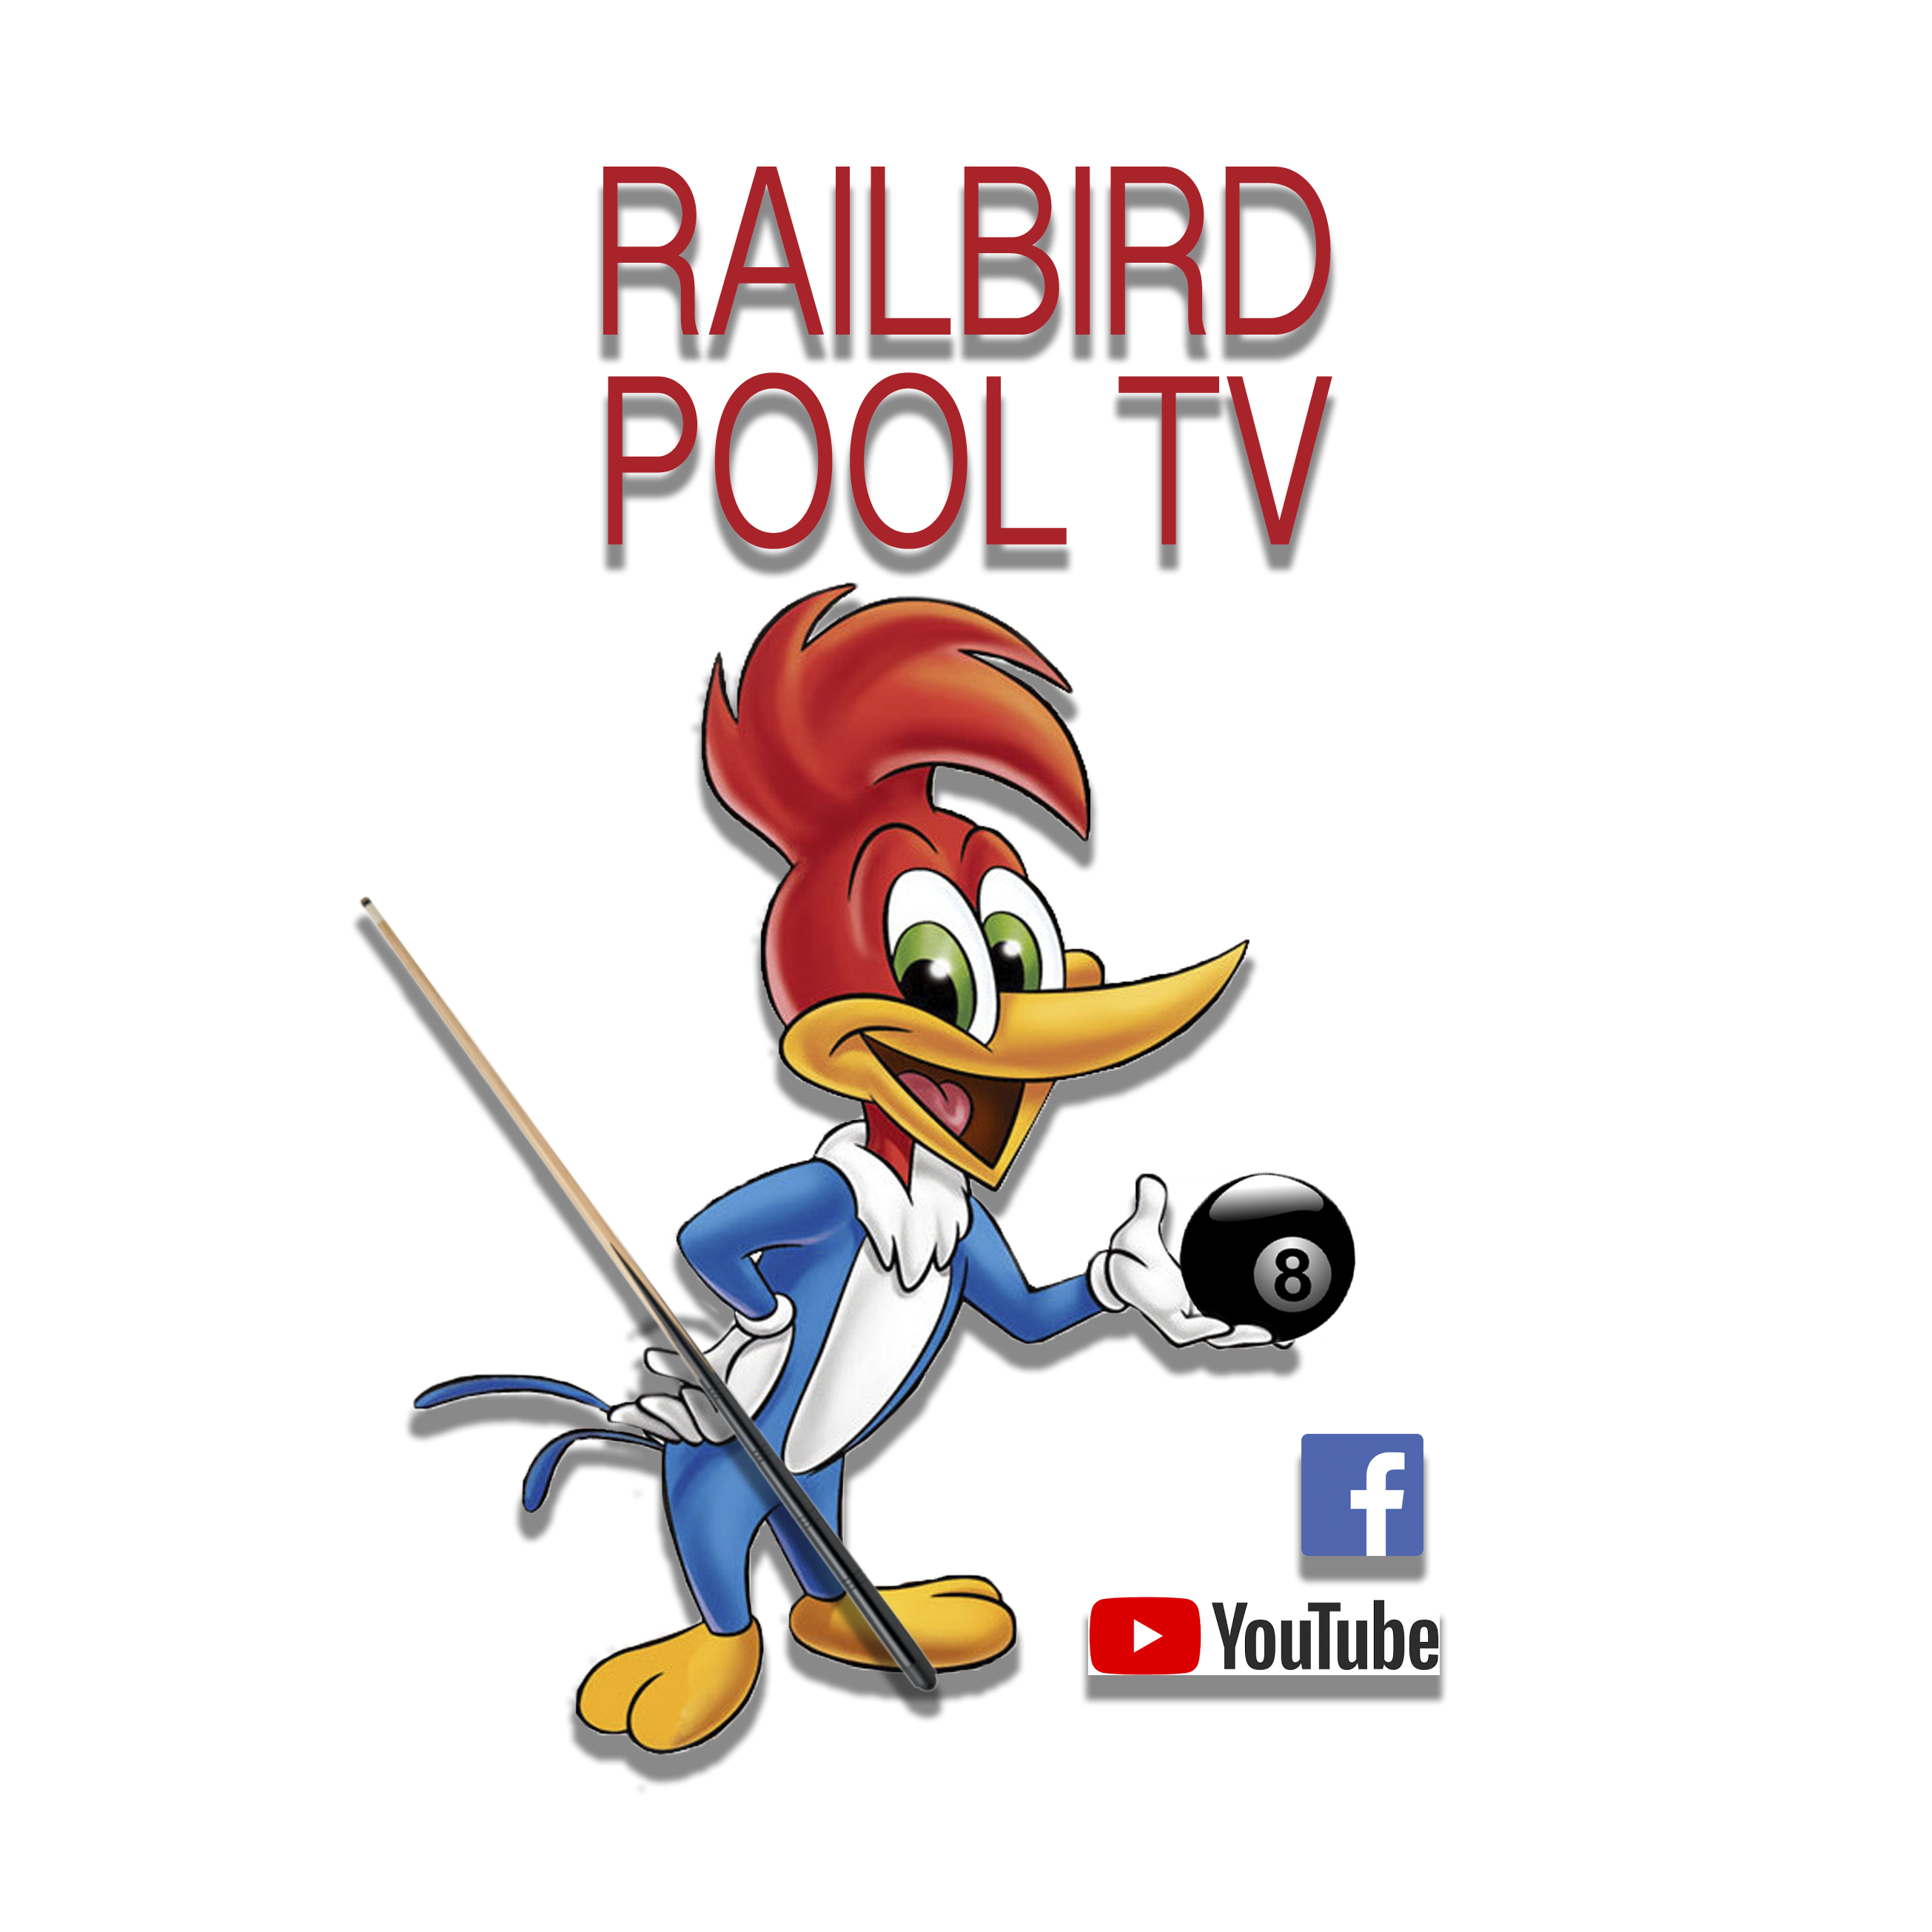 RailBird Pool TV